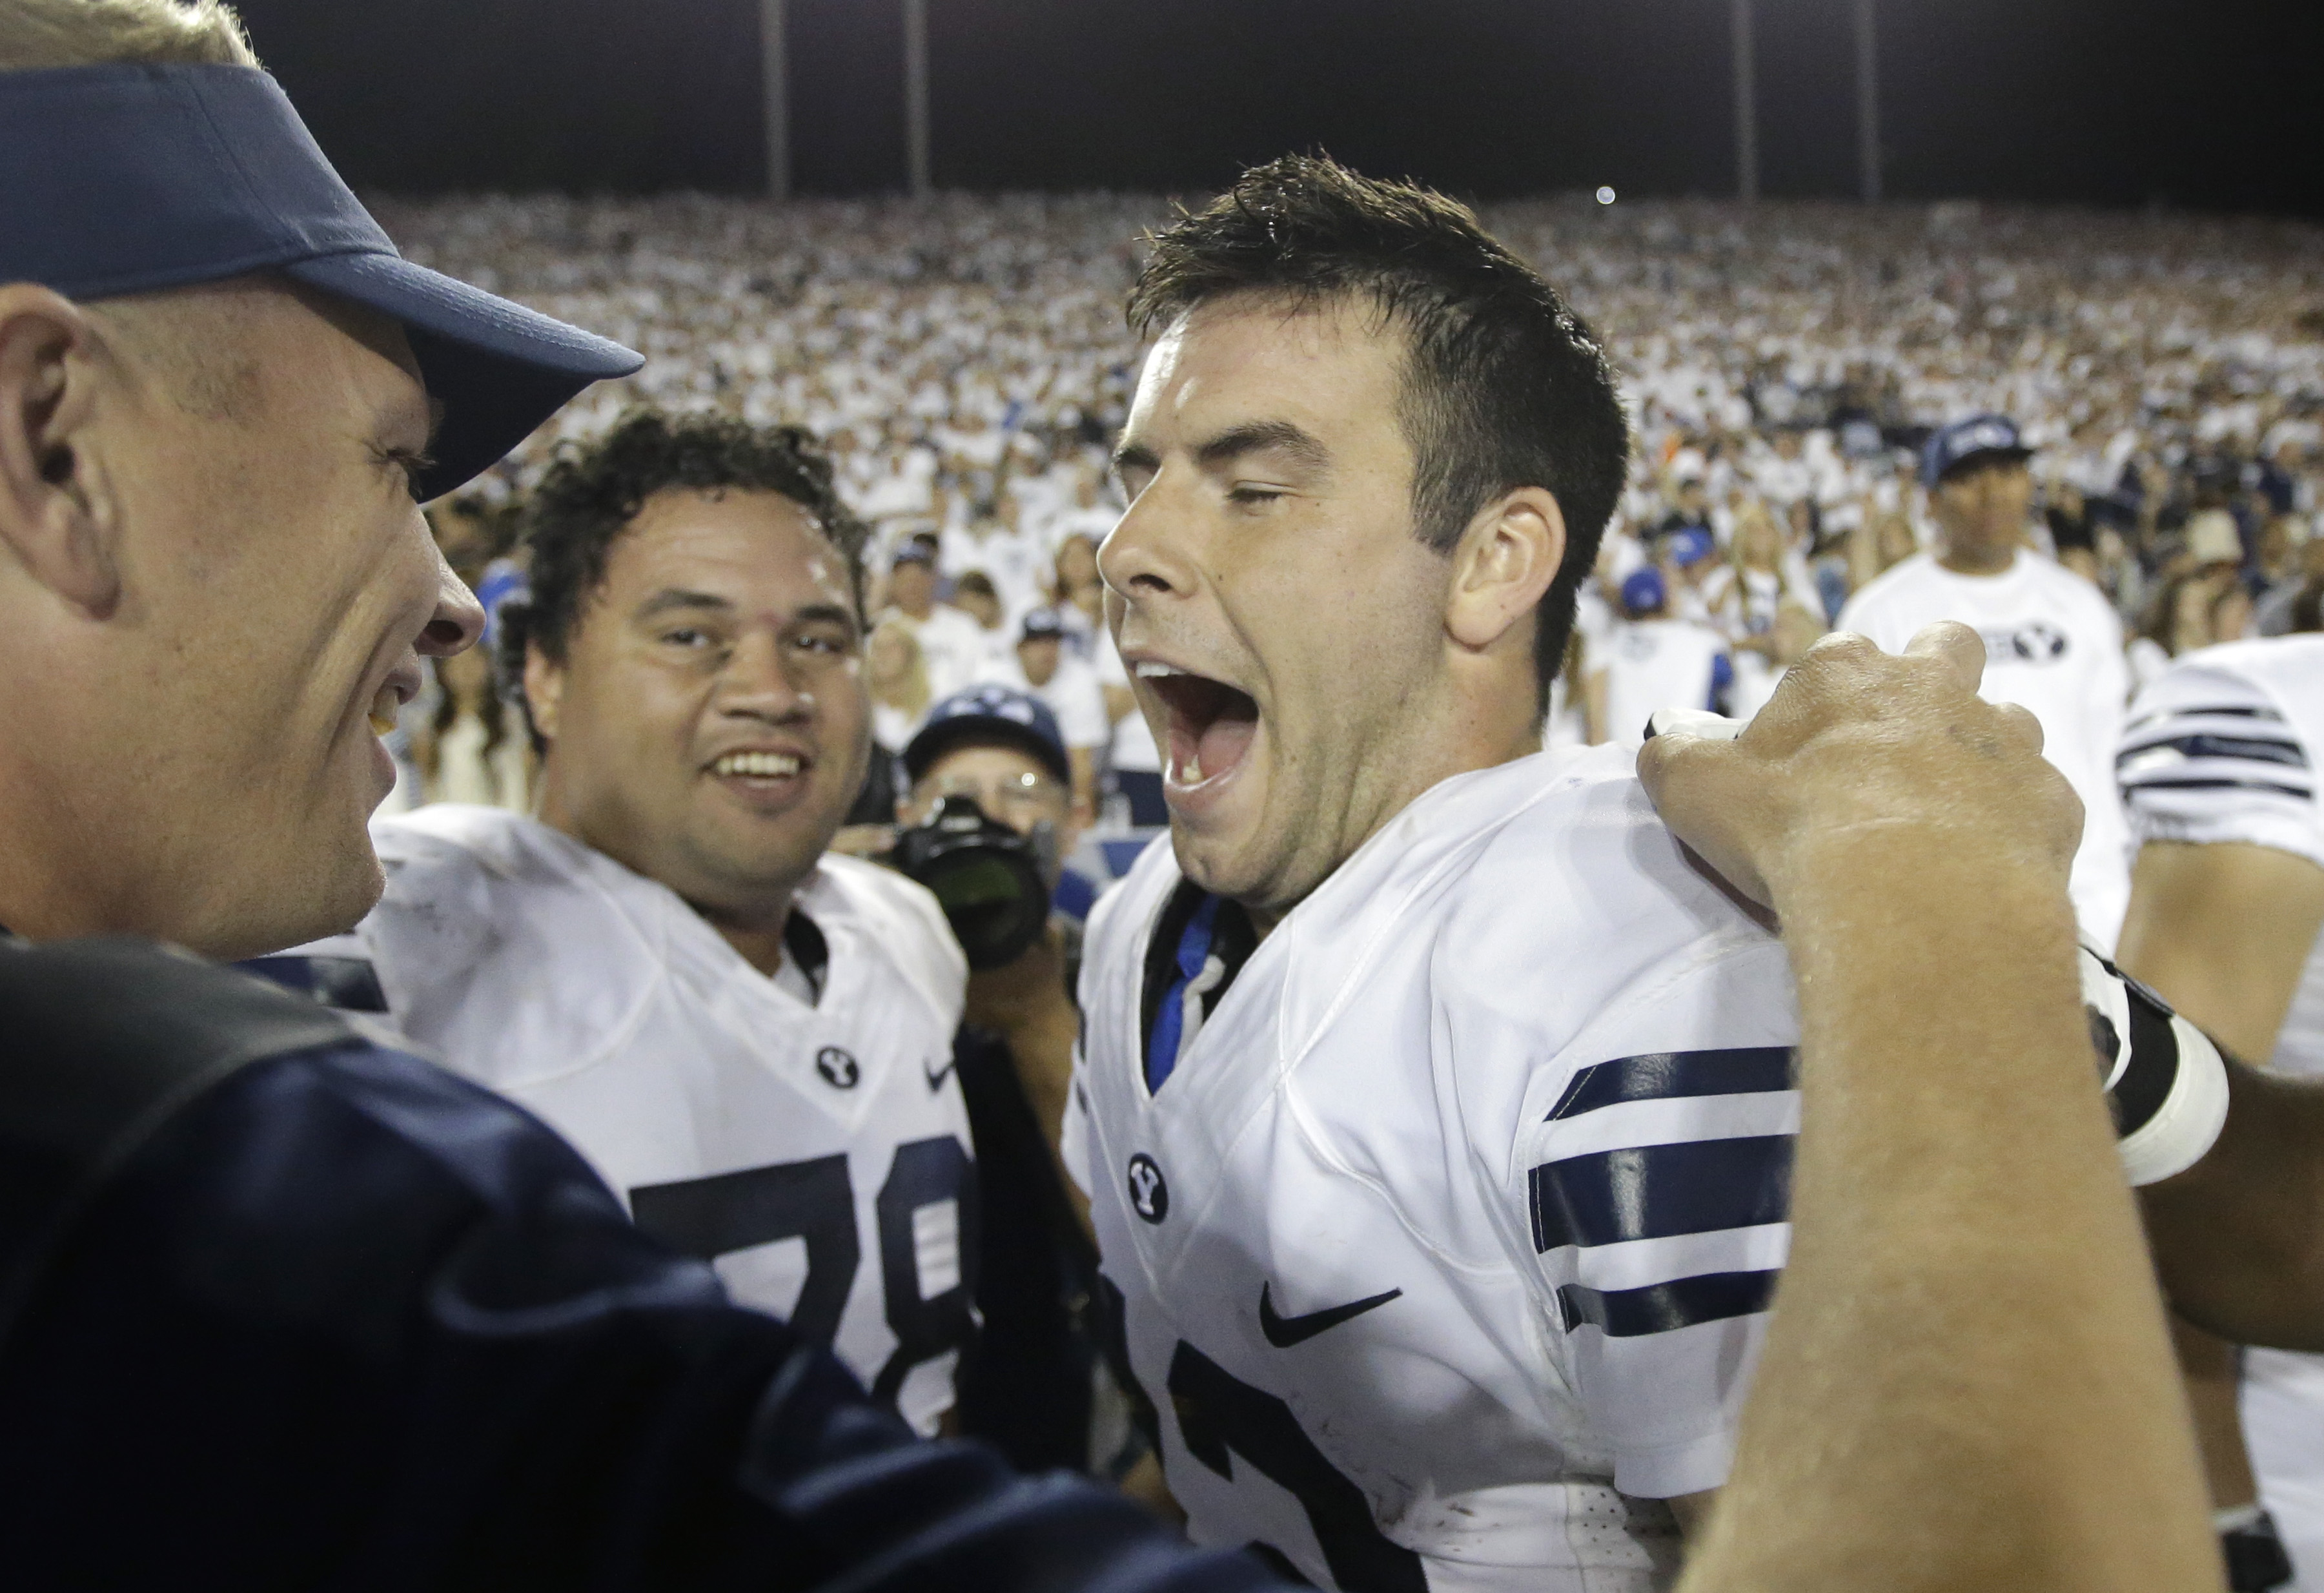 FILE - In this Saturday, Sept. 12, 2015, file photo, BYU quarterback Tanner Mangum, right, celebrates on the sidelines in the second half of an NCAA college football game against Boise State in Provo, Utah. No. 19 BYU's game against No. 10 UCLA at the Ros